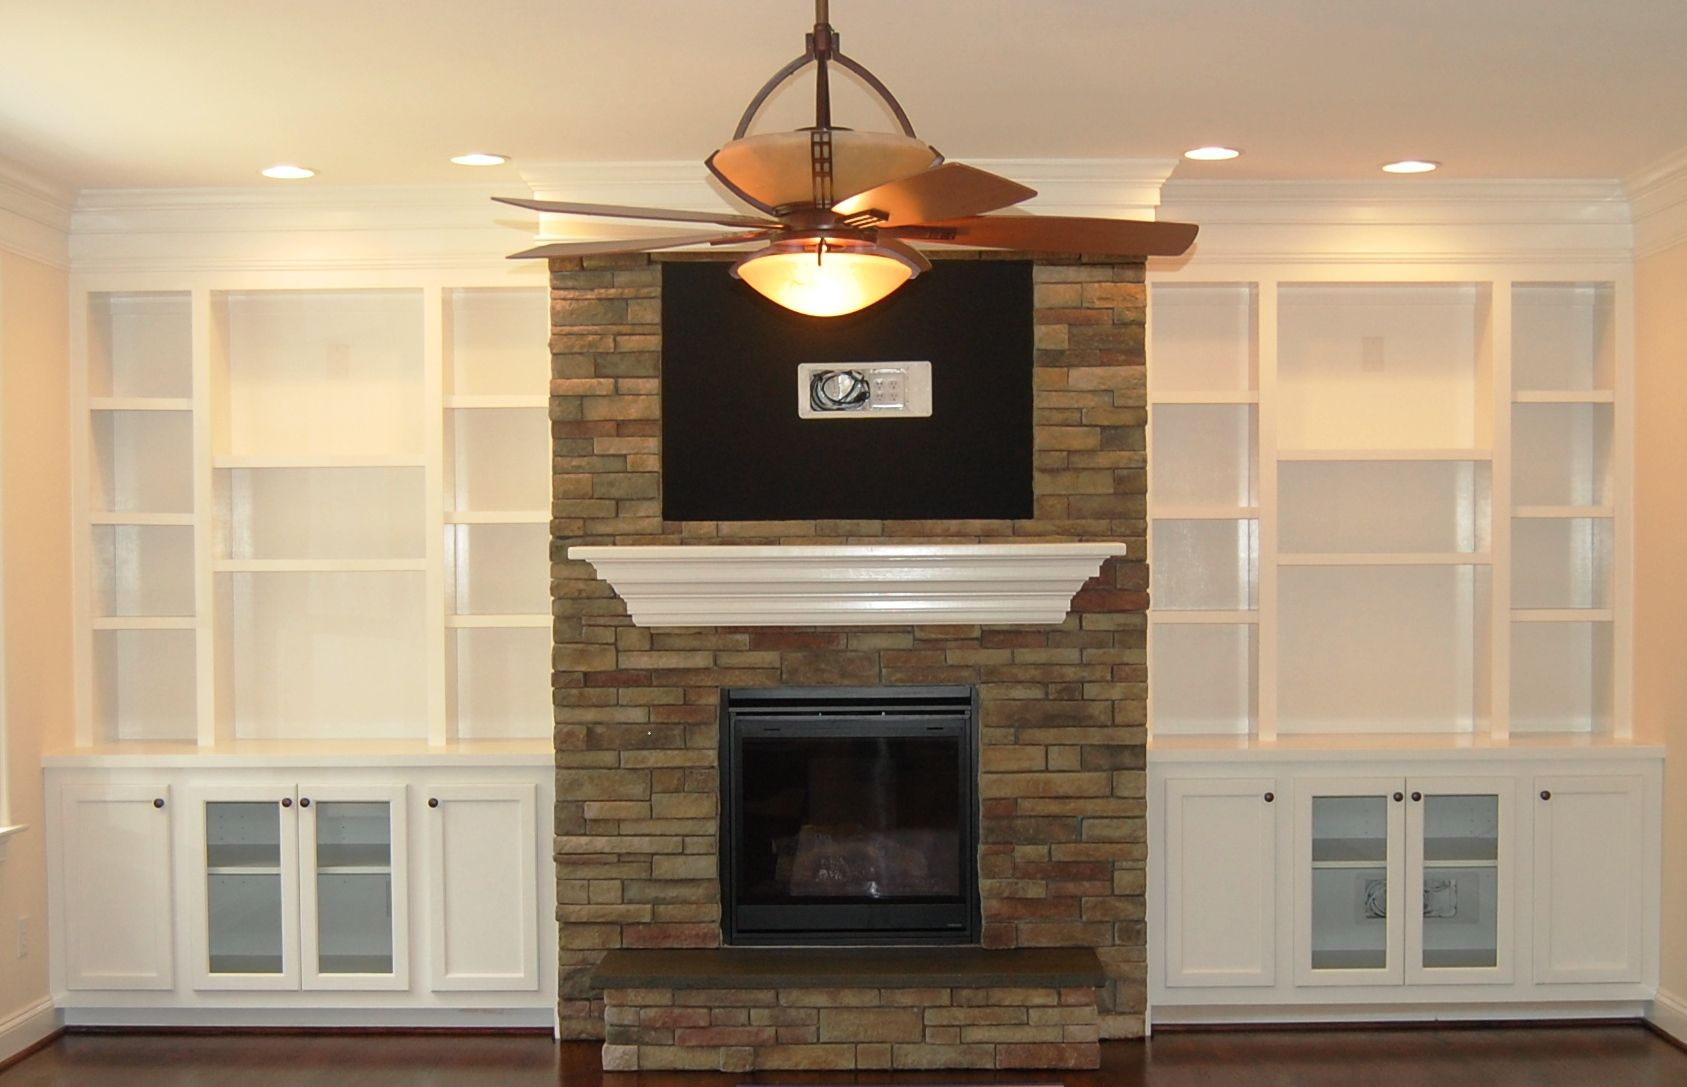 built in bookshelves | FV-74 Fireplace and Bookcase picture | Home ...